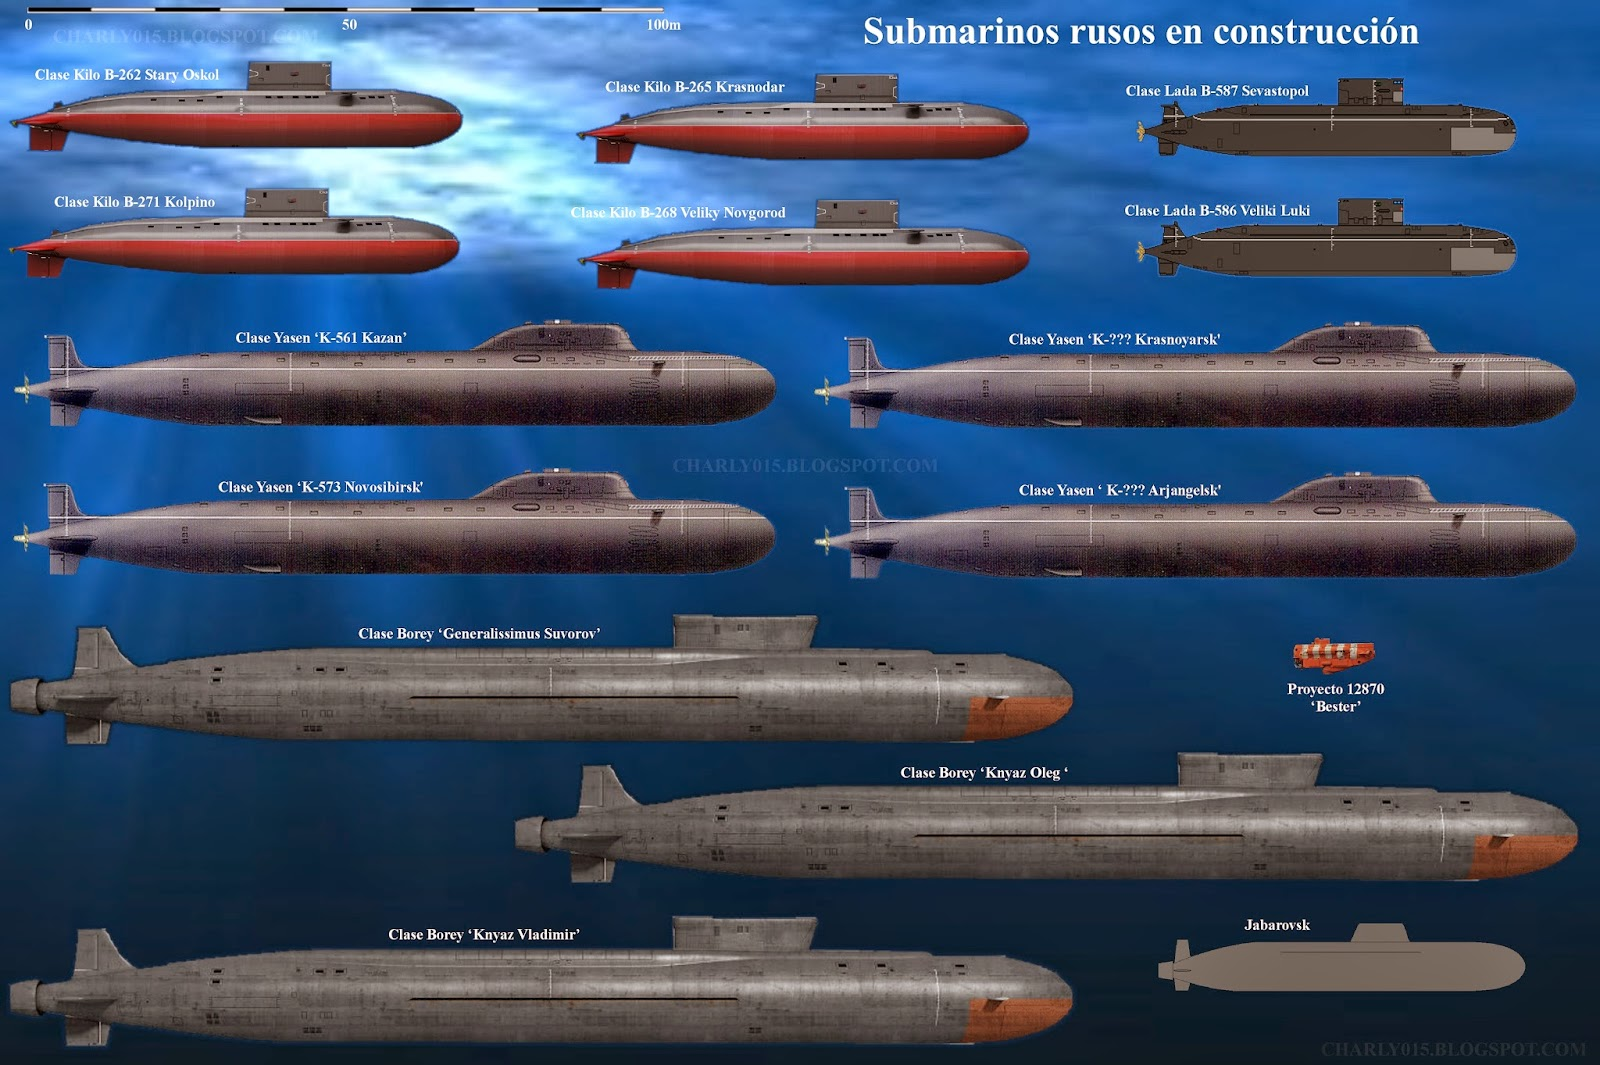 Russian Nuclear Submarine Force: Discussion - Page 5 Submarinos%2Brusos%2Ben%2Bconstrucci%C3%B3n